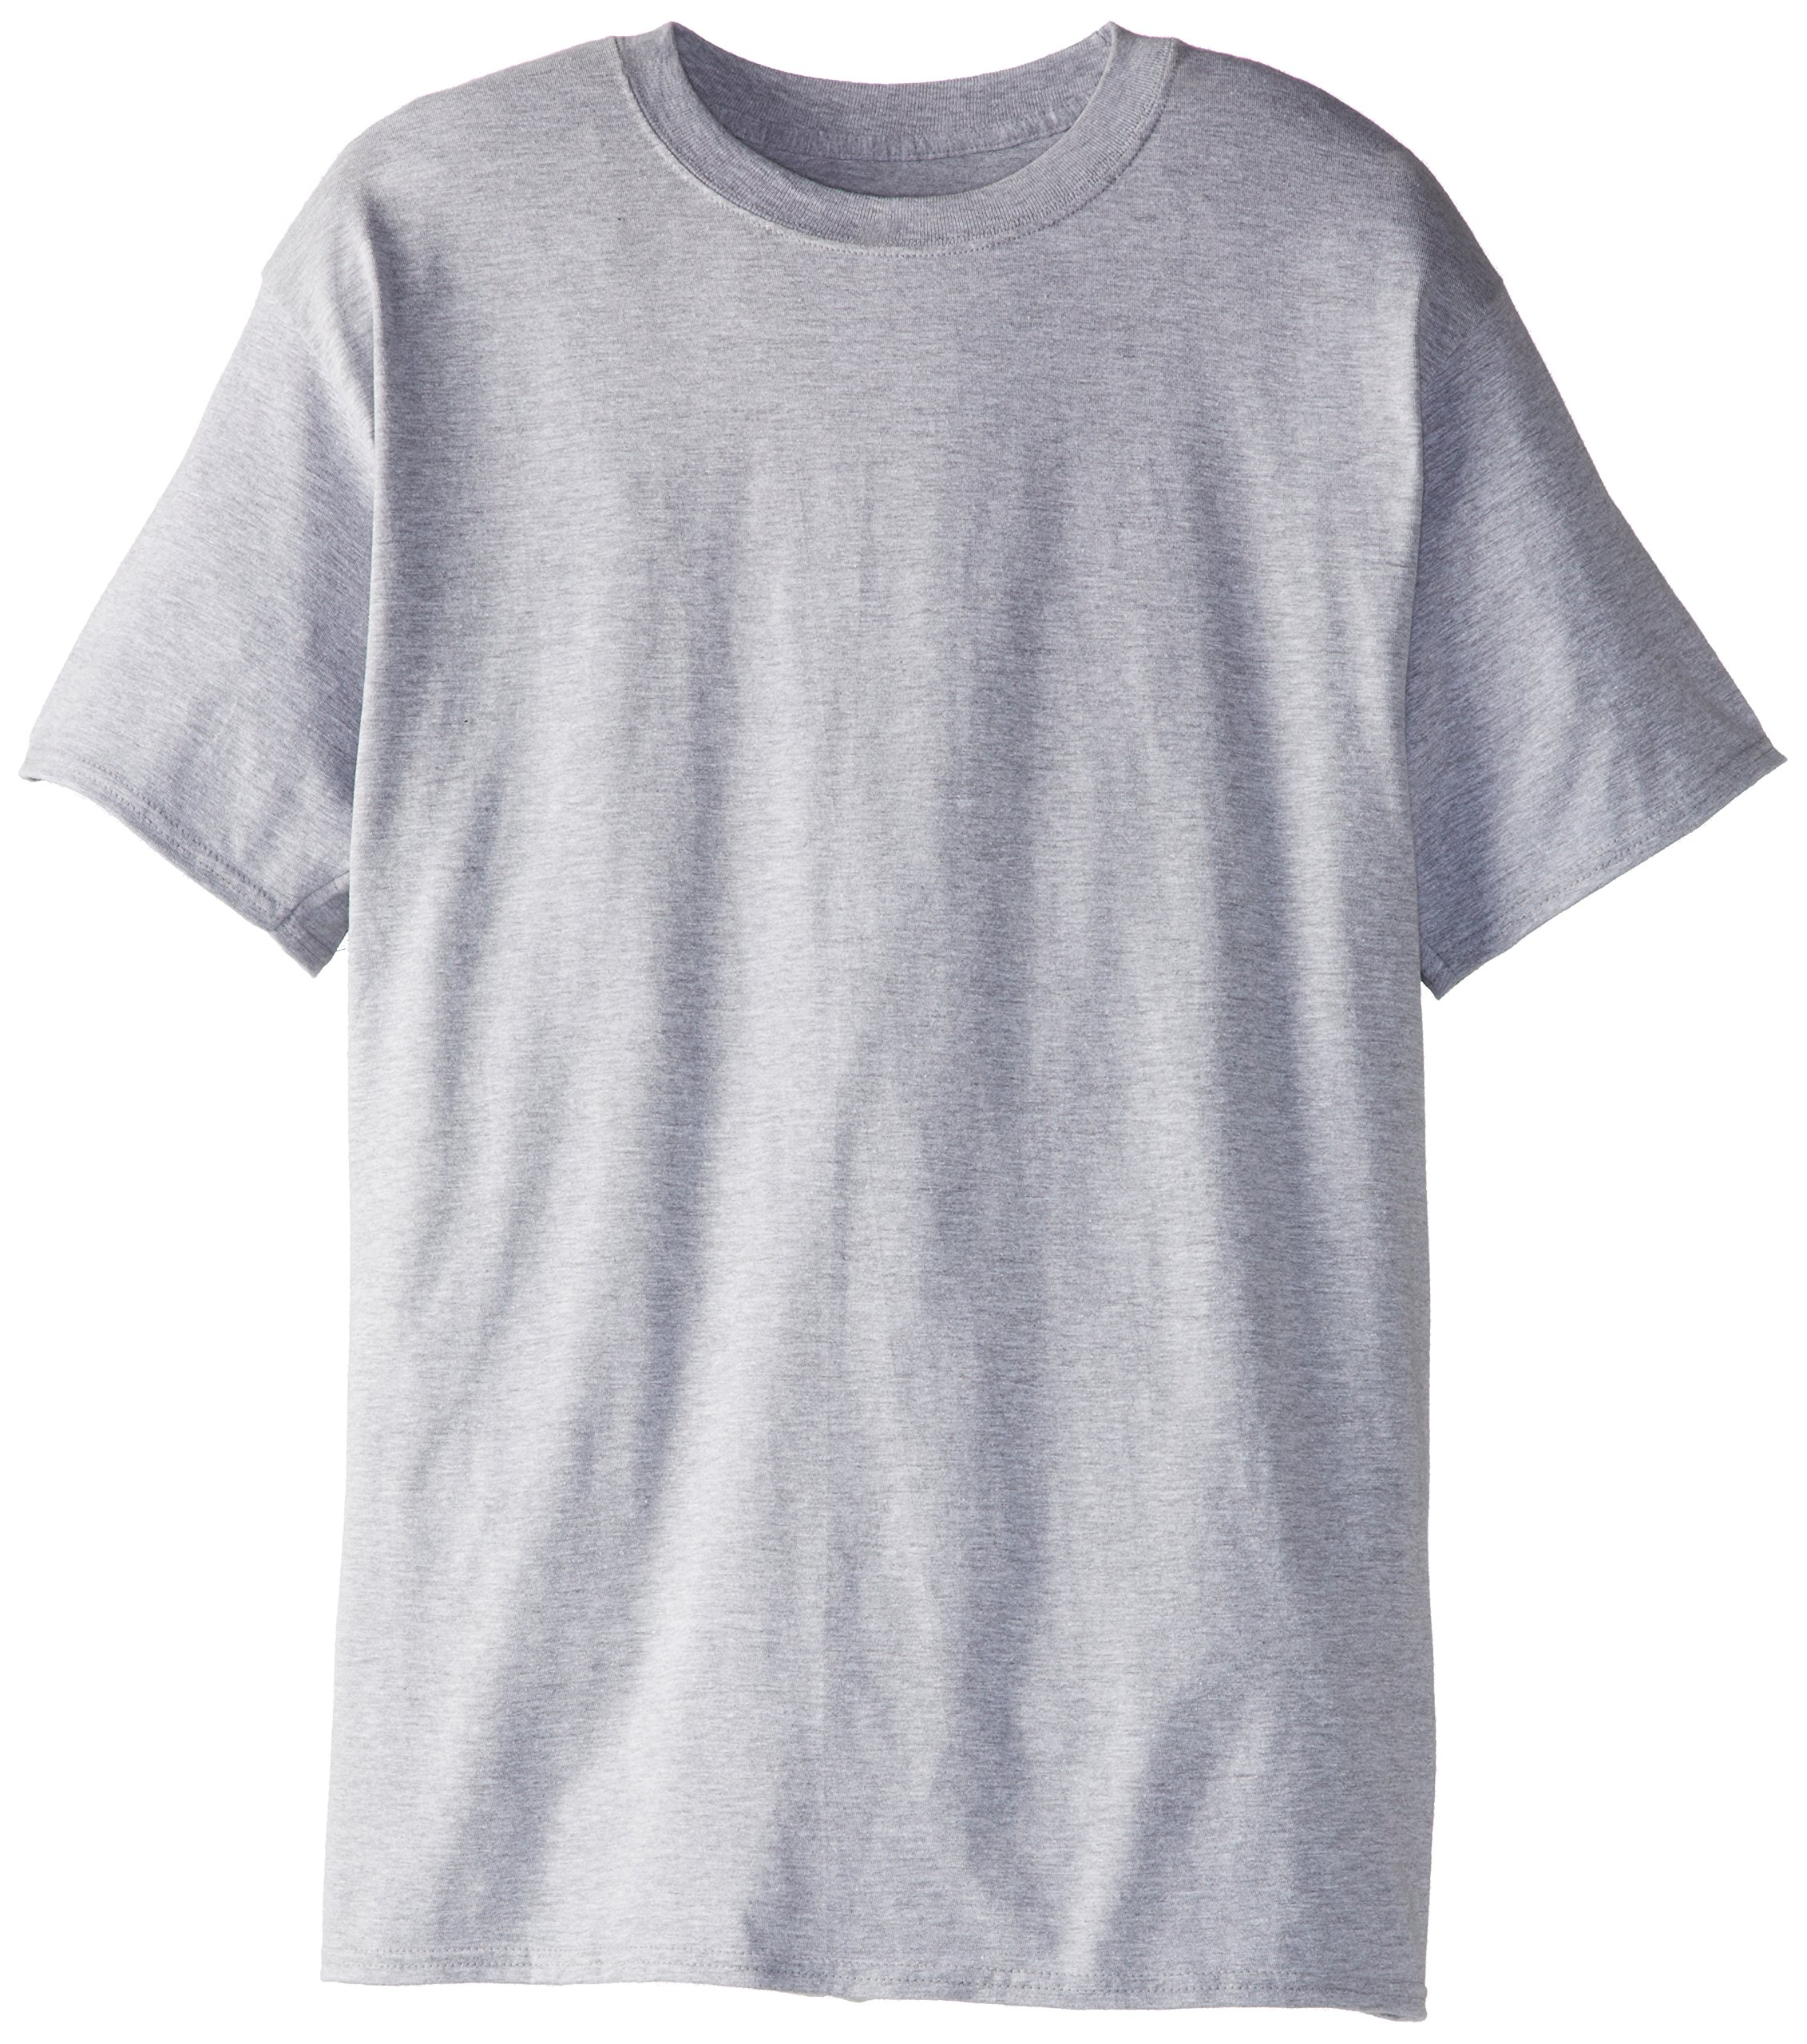 Hanes Men's Tall Short Sleeve Beefy-T, Light Steel, XX-Large/Tall (Pack of 2)